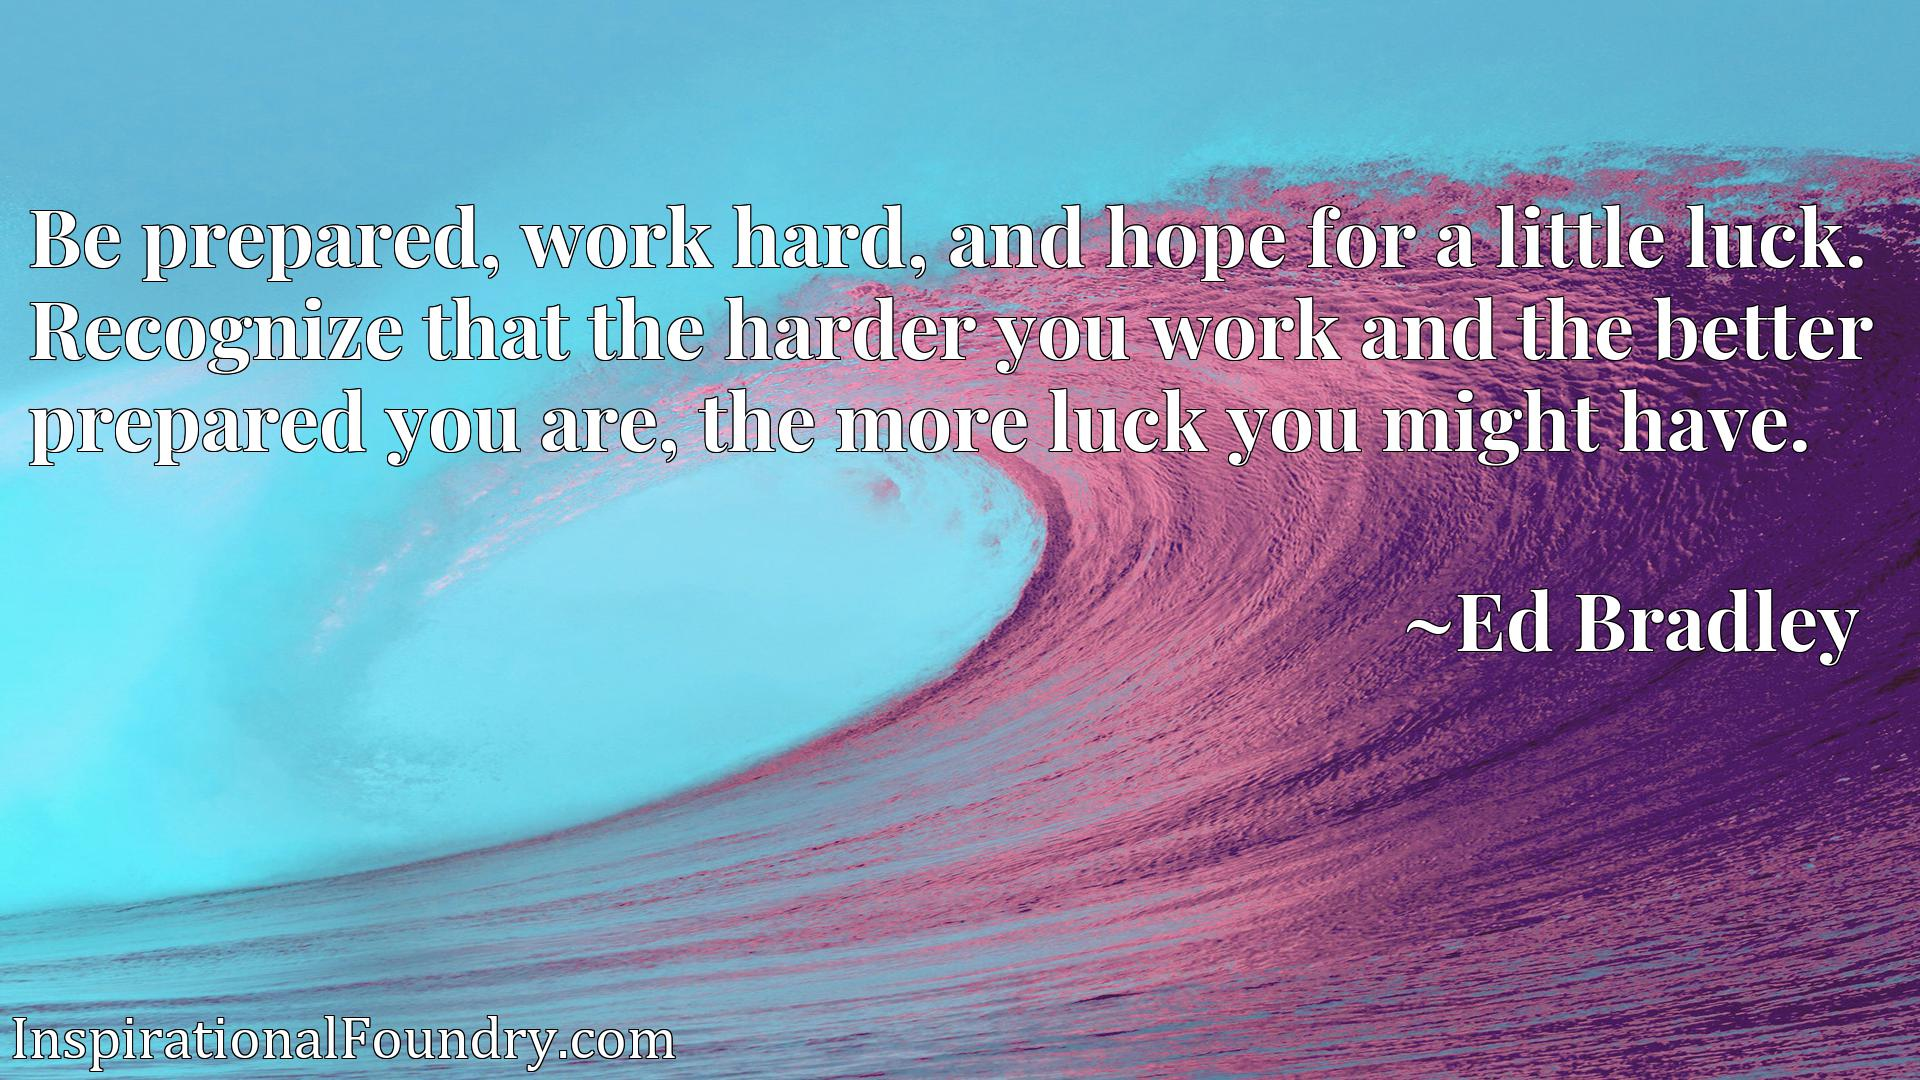 Quote Picture :Be prepared, work hard, and hope for a little luck. Recognize that the harder you work and the better prepared you are, the more luck you might have.